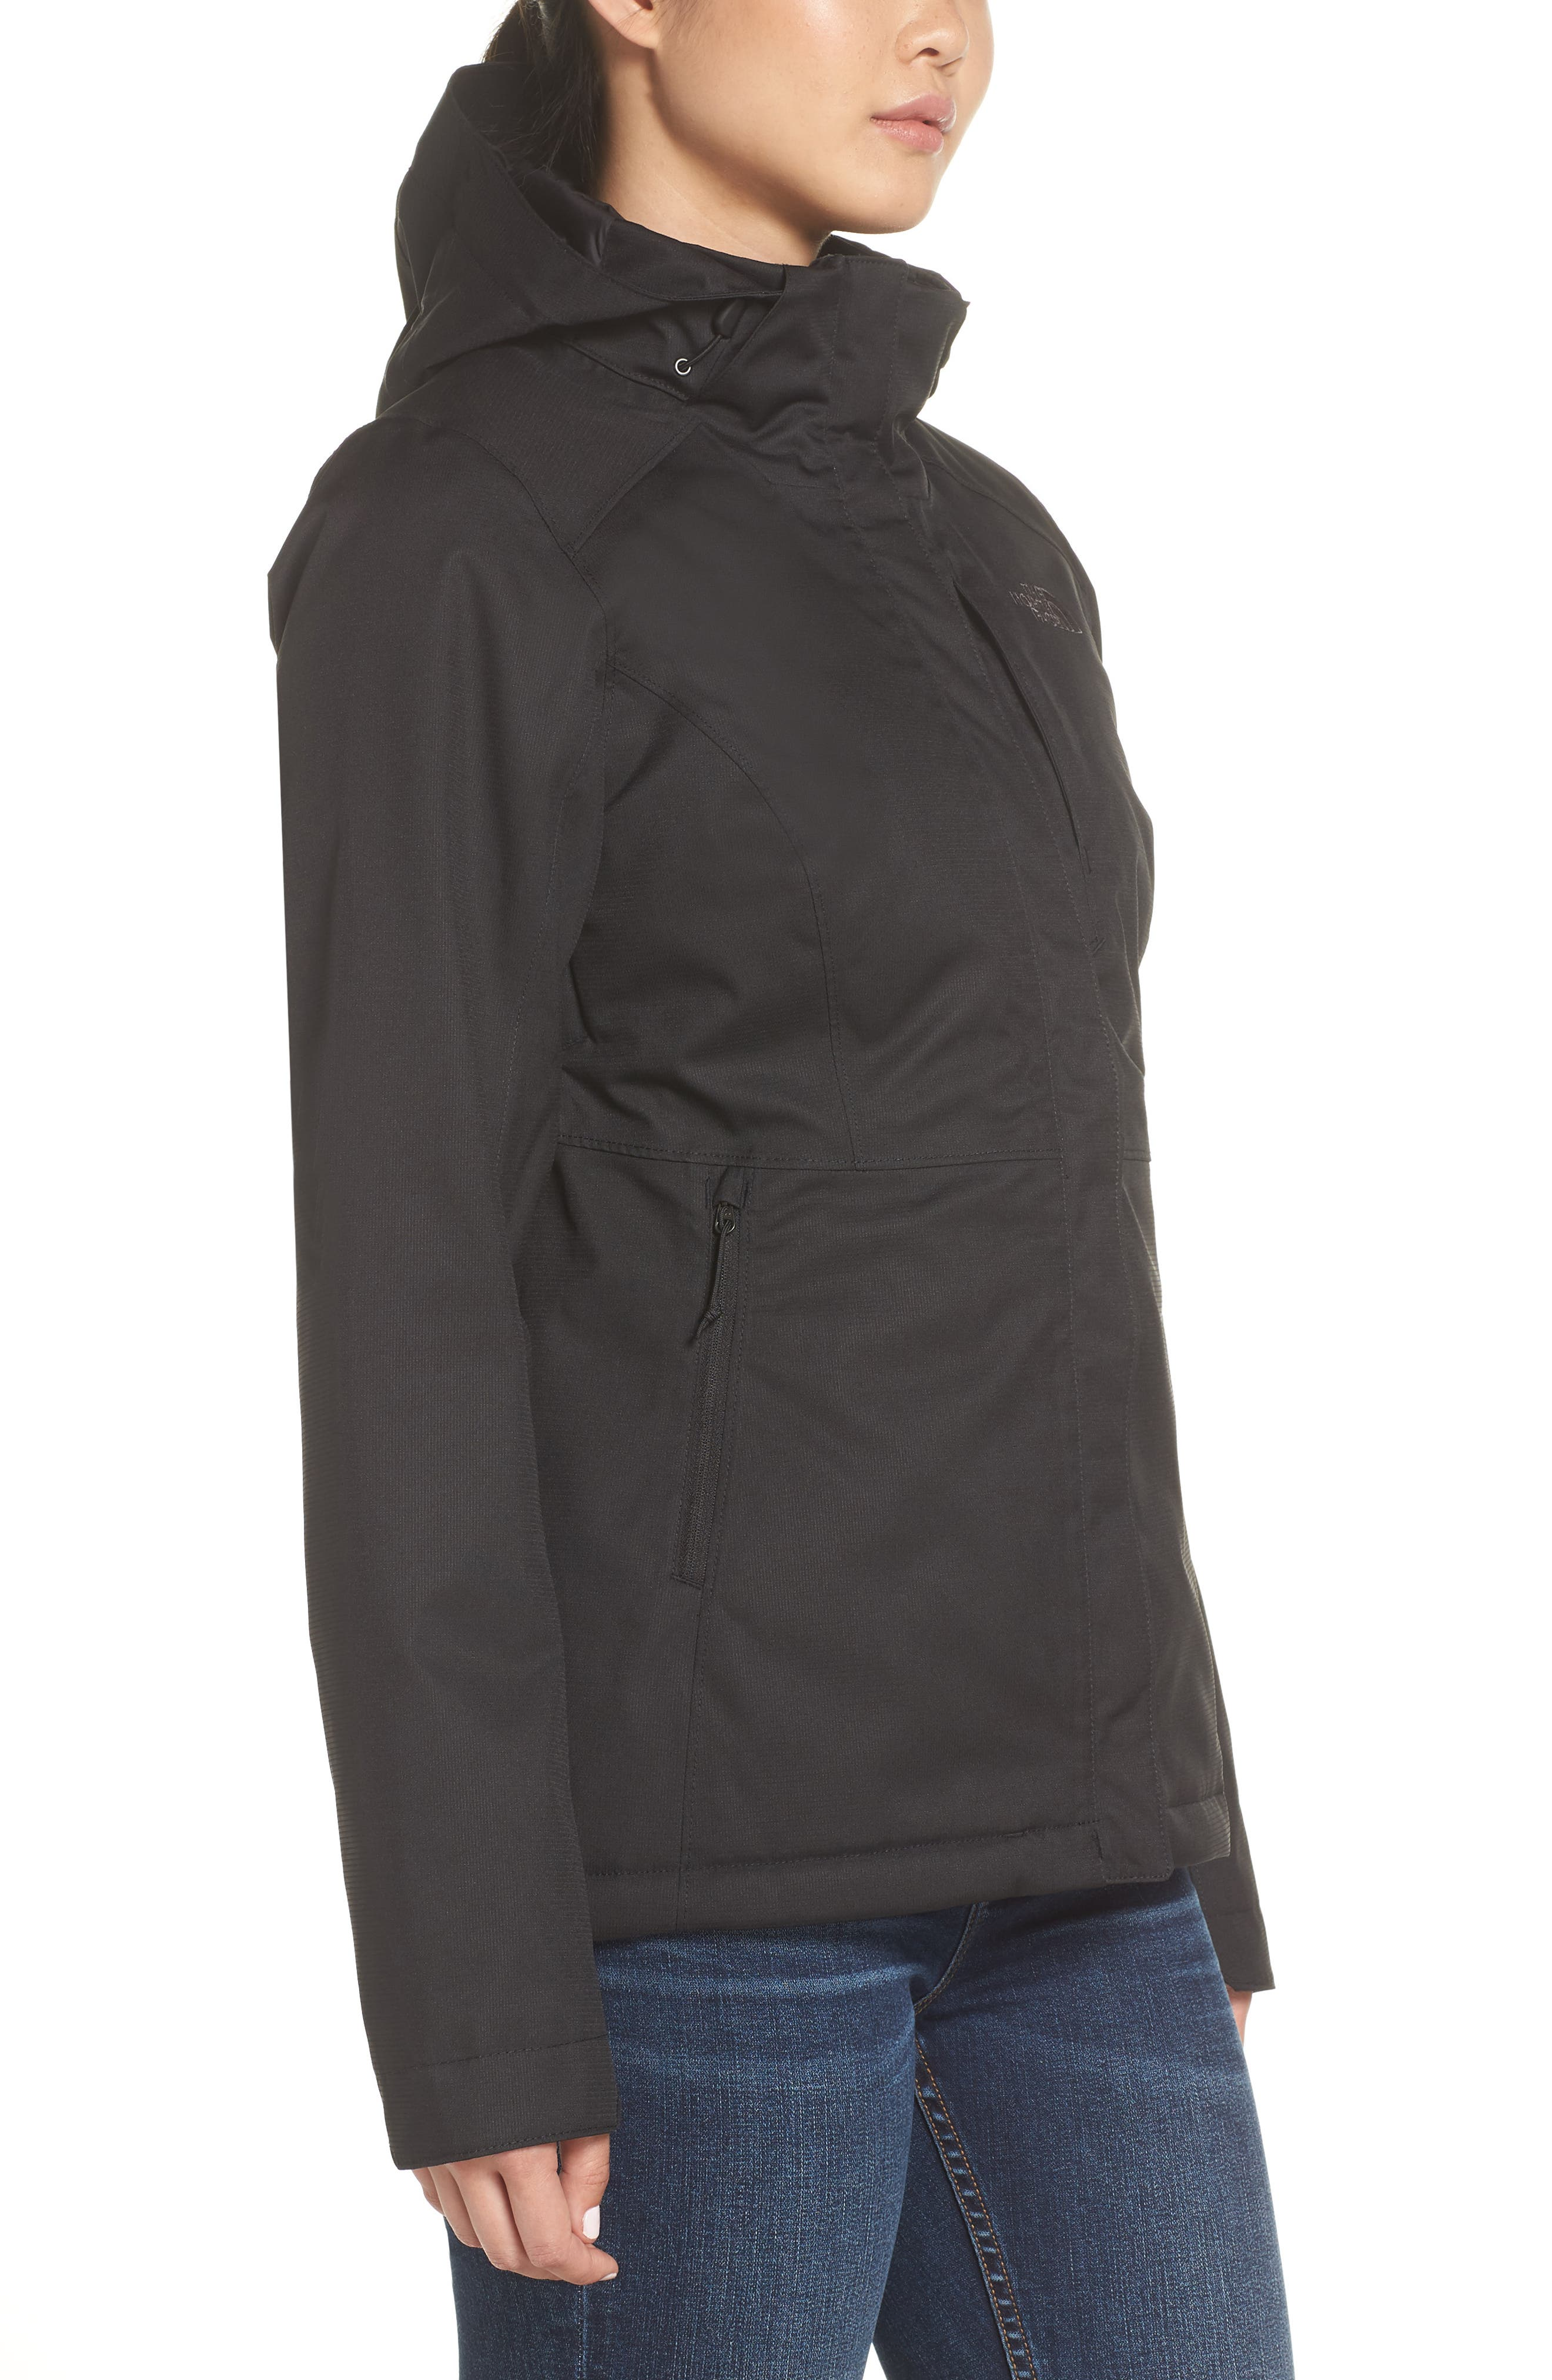 Inlux 2.0 Standard Fit Hooded DryVent Jacket,                             Alternate thumbnail 3, color,                             TNF BLACK